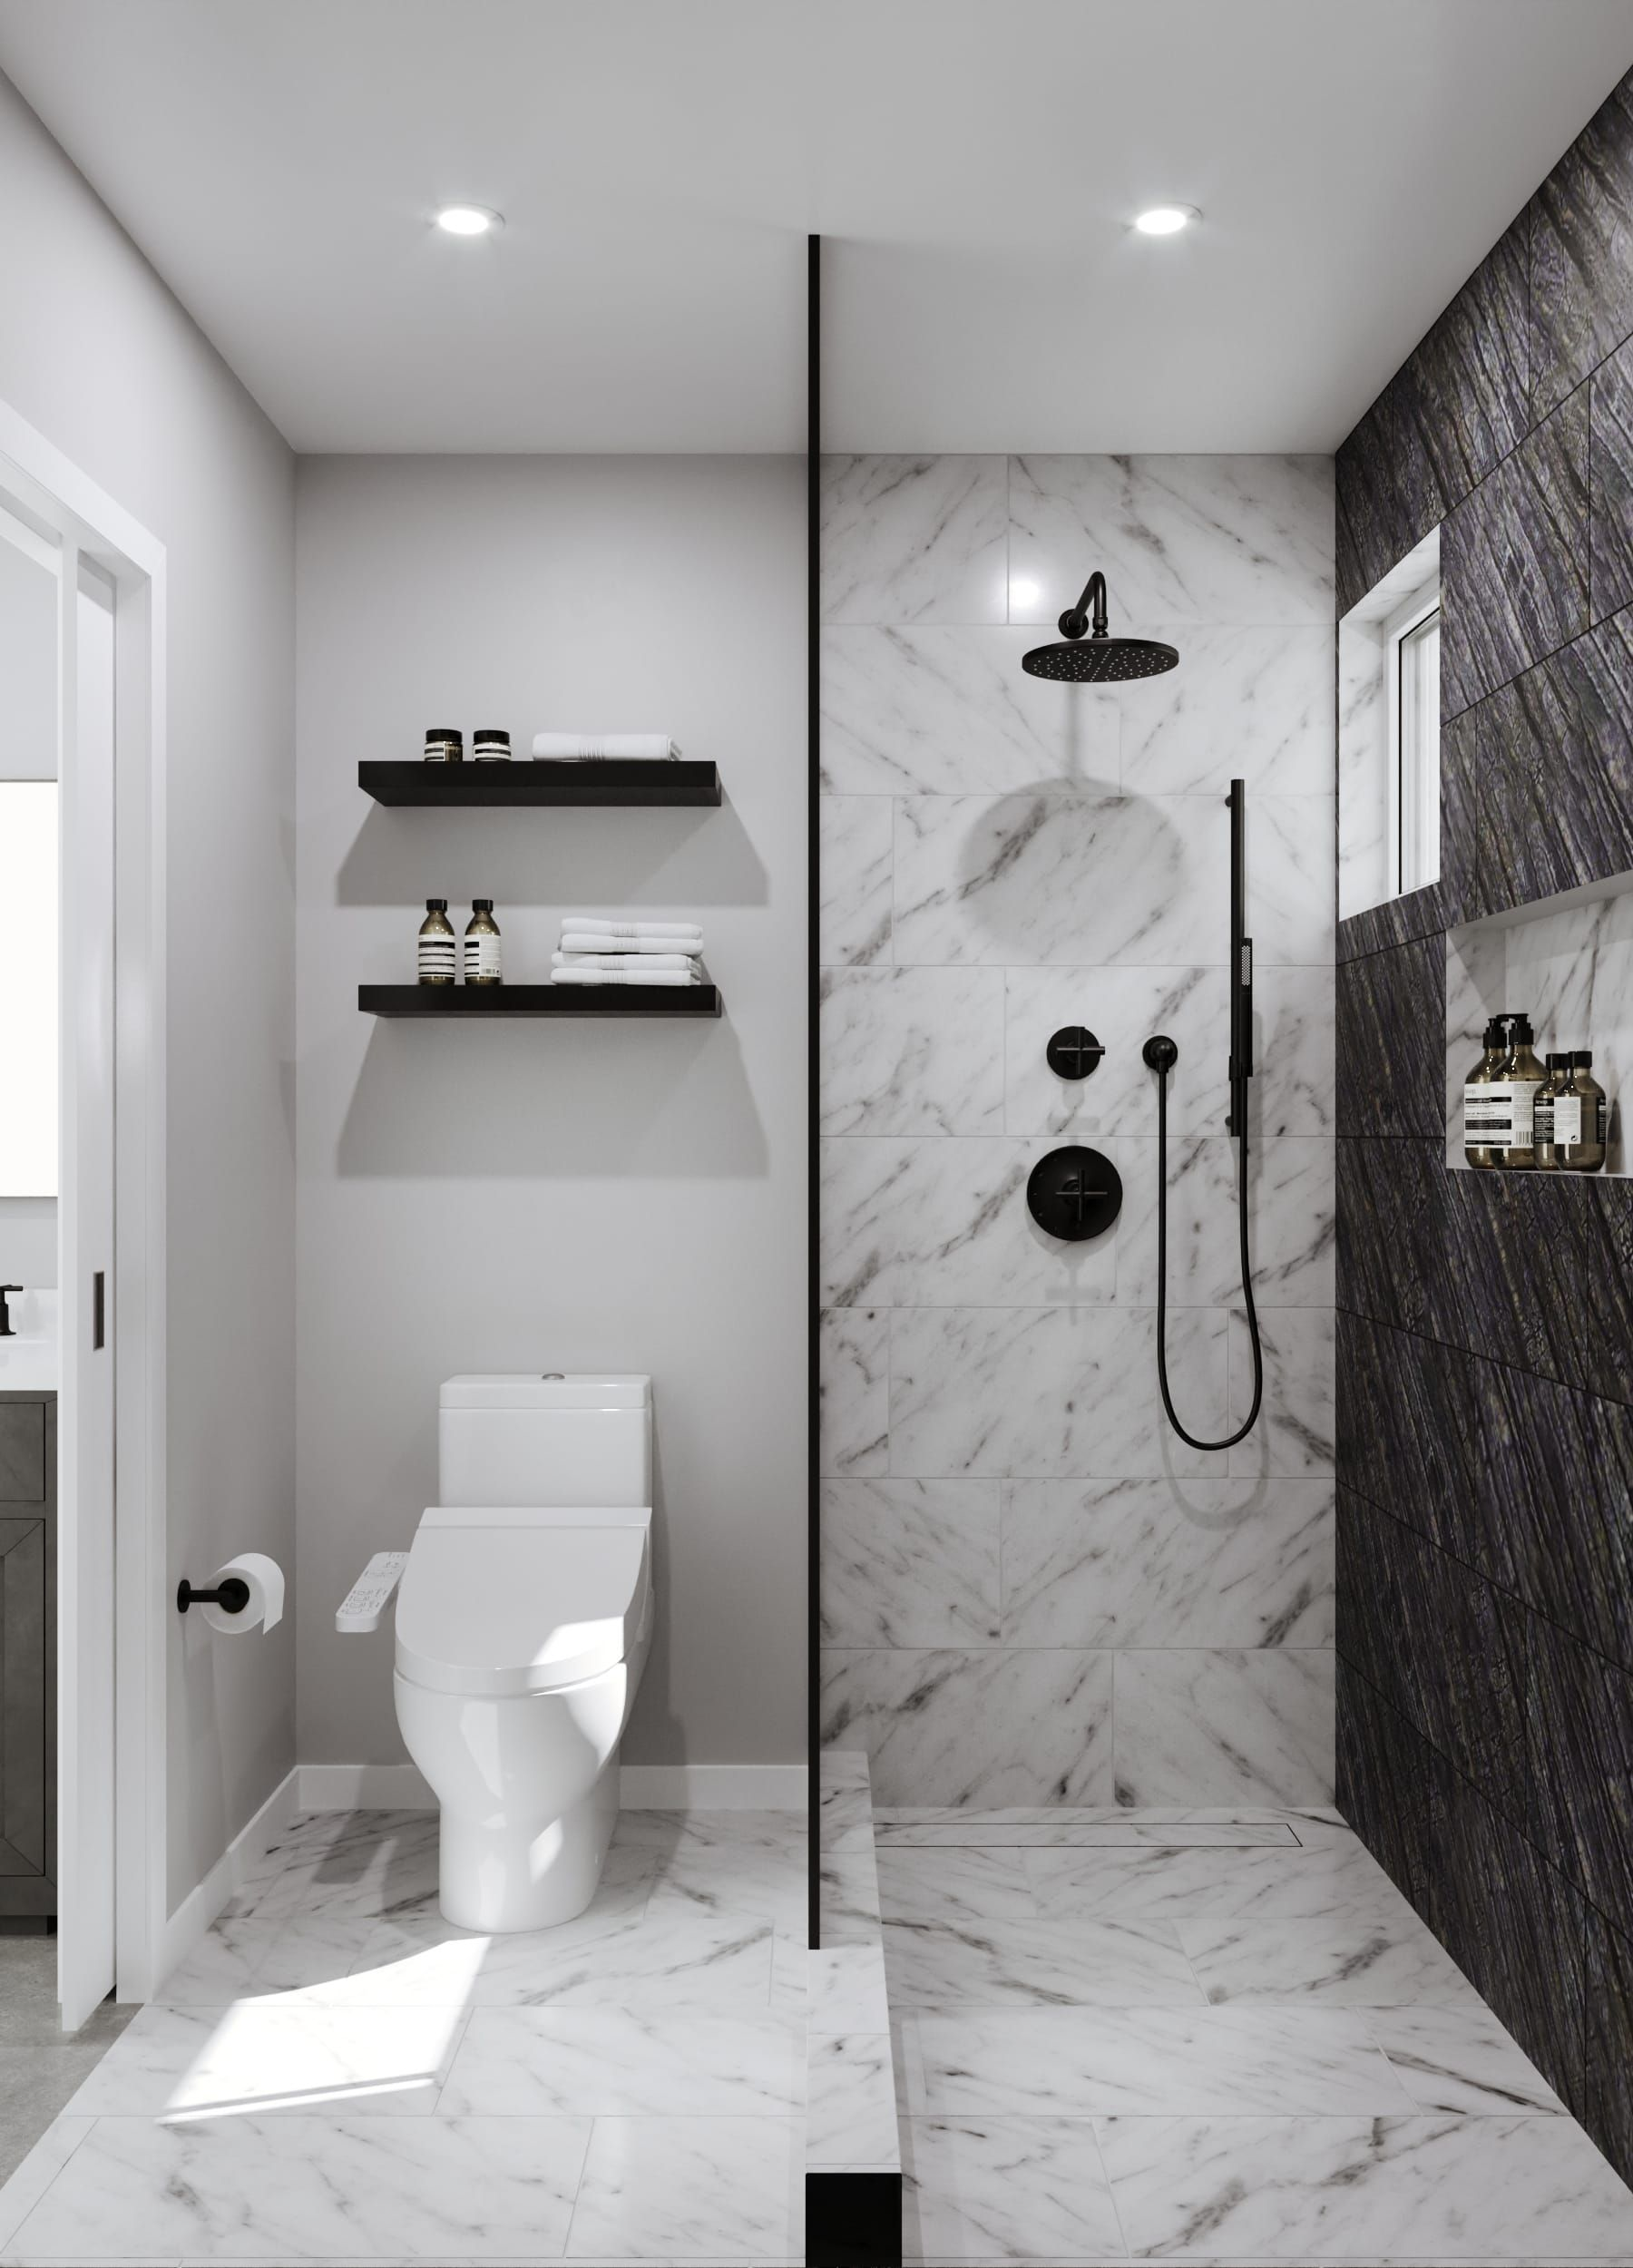 pin by darren huang on 居家佈置 in 2020 with images latest on bathroom renovation ideas 2020 id=81676